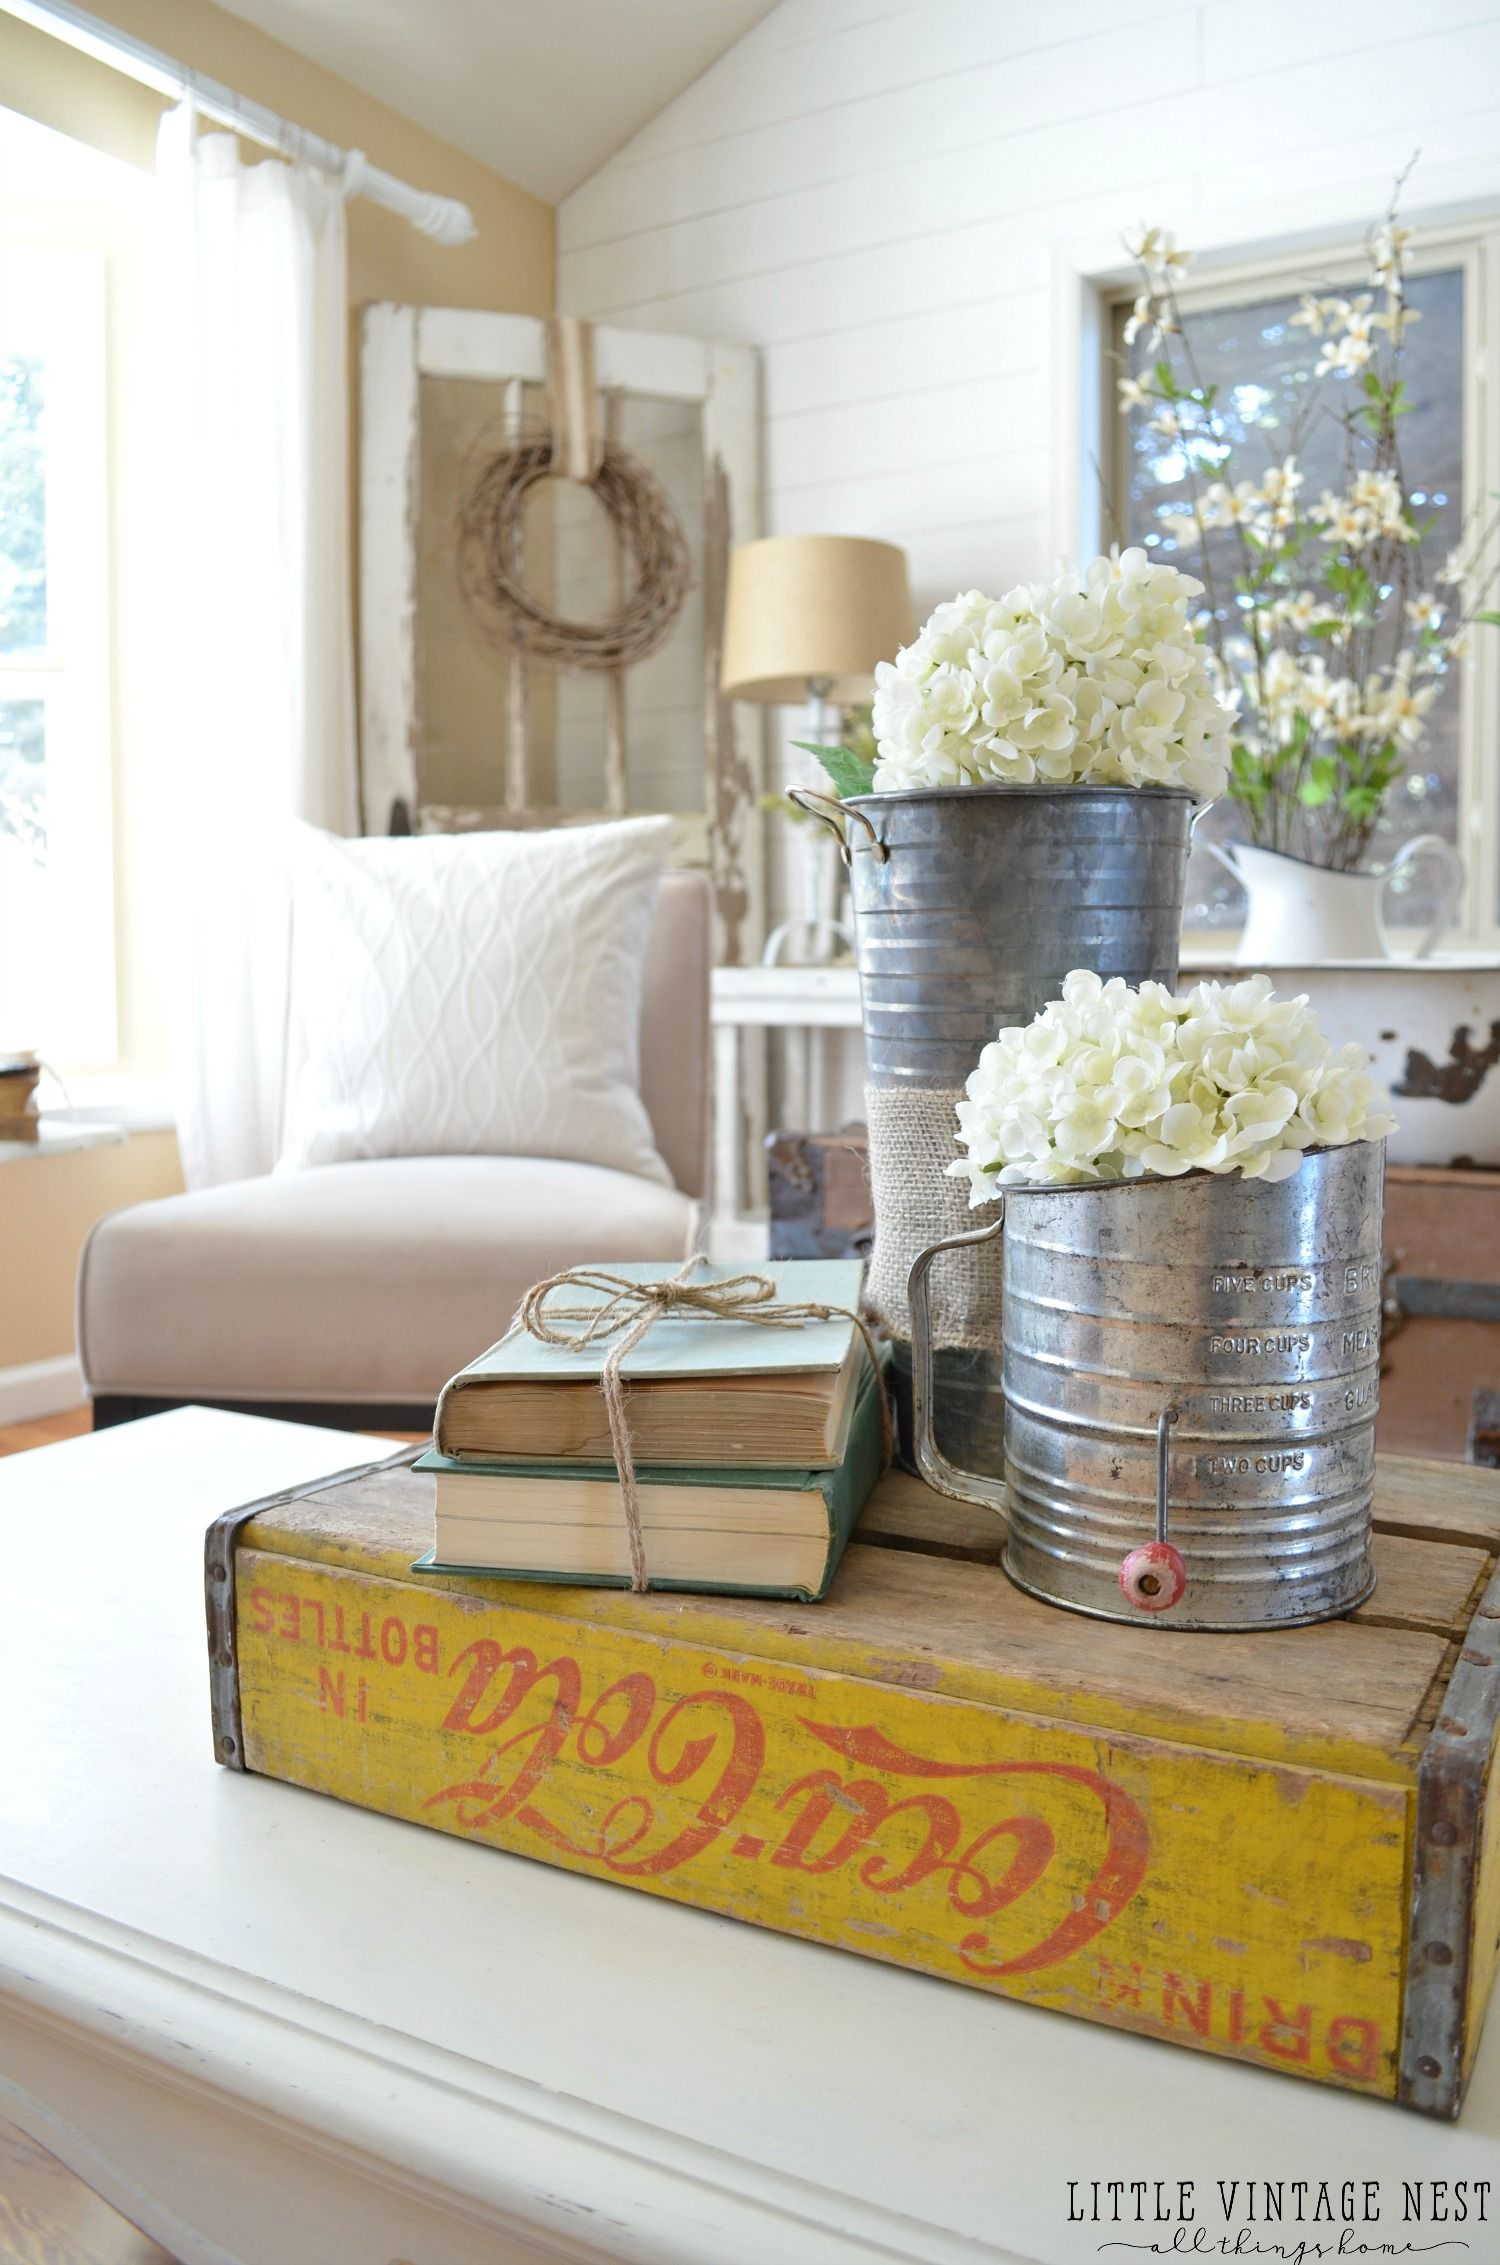 How To Decorate With Vintage Decor E Crate And Flour Sifter Turned Vase